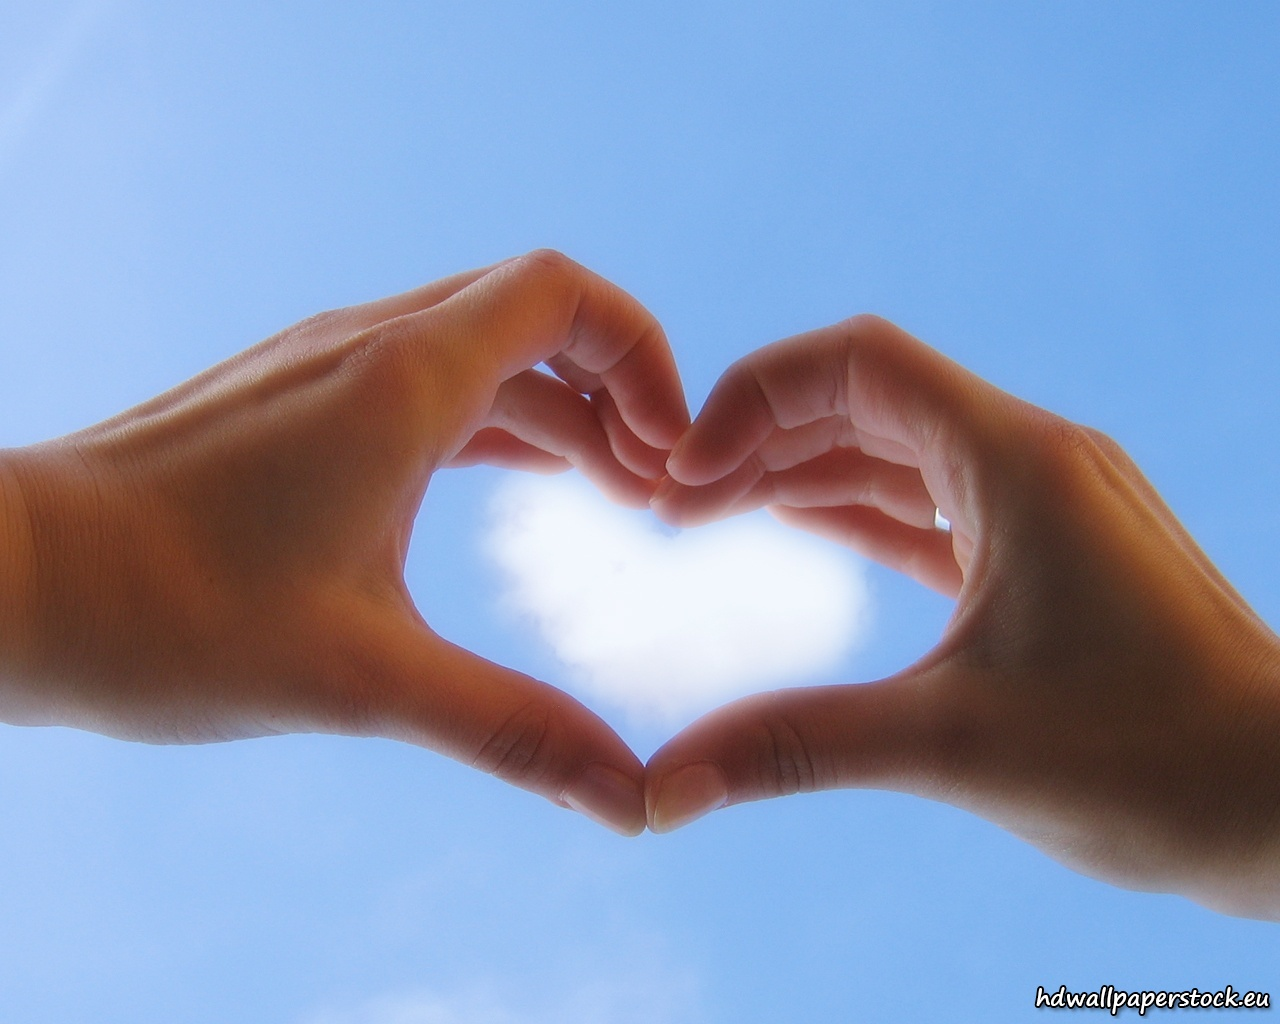 Heart Shaped Hands Stock Photos - Image: 31704383